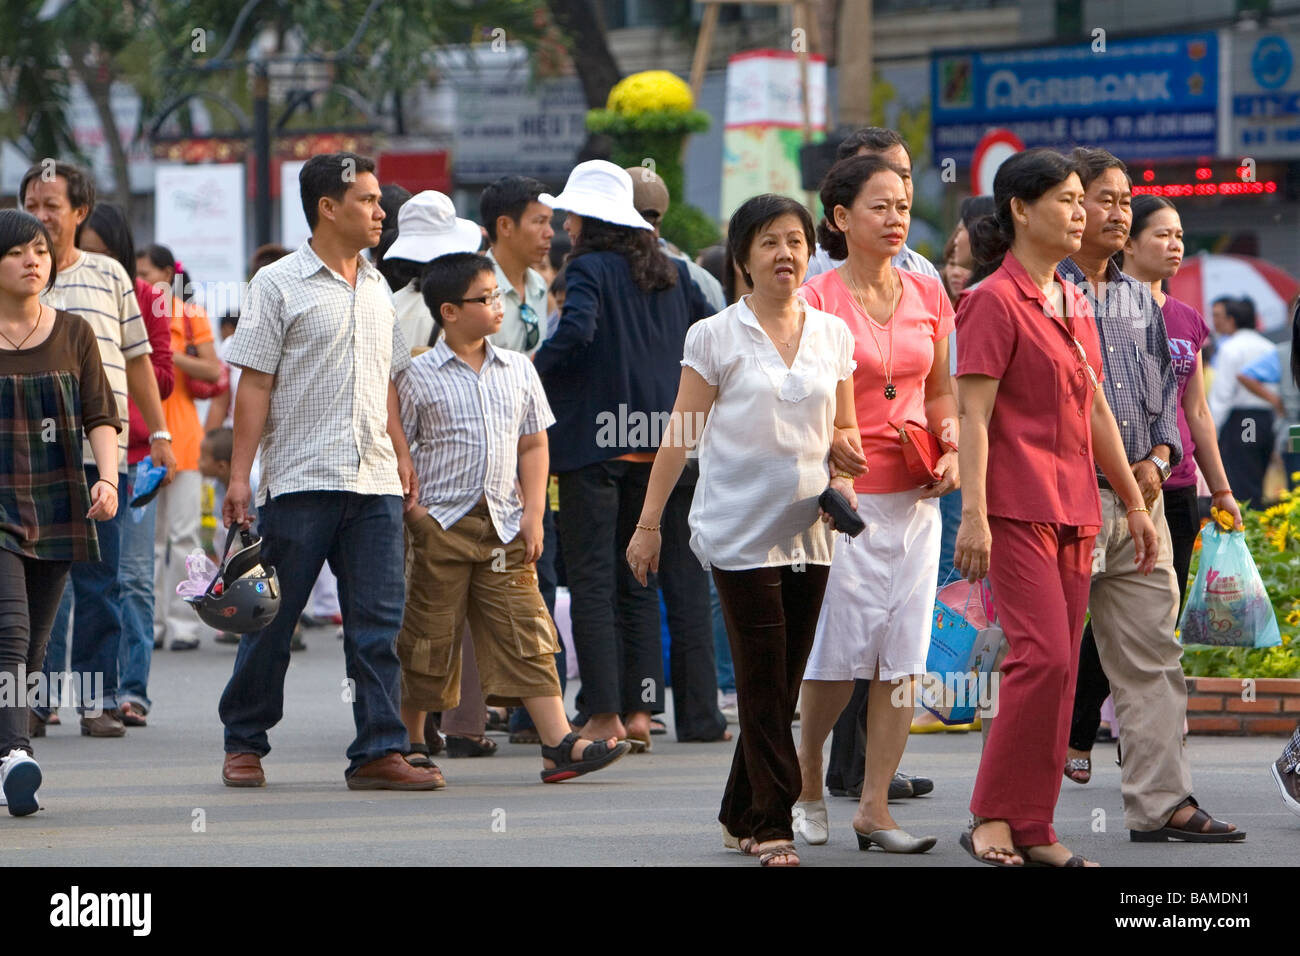 Vietnamese People Stock Images RoyaltyFree Images